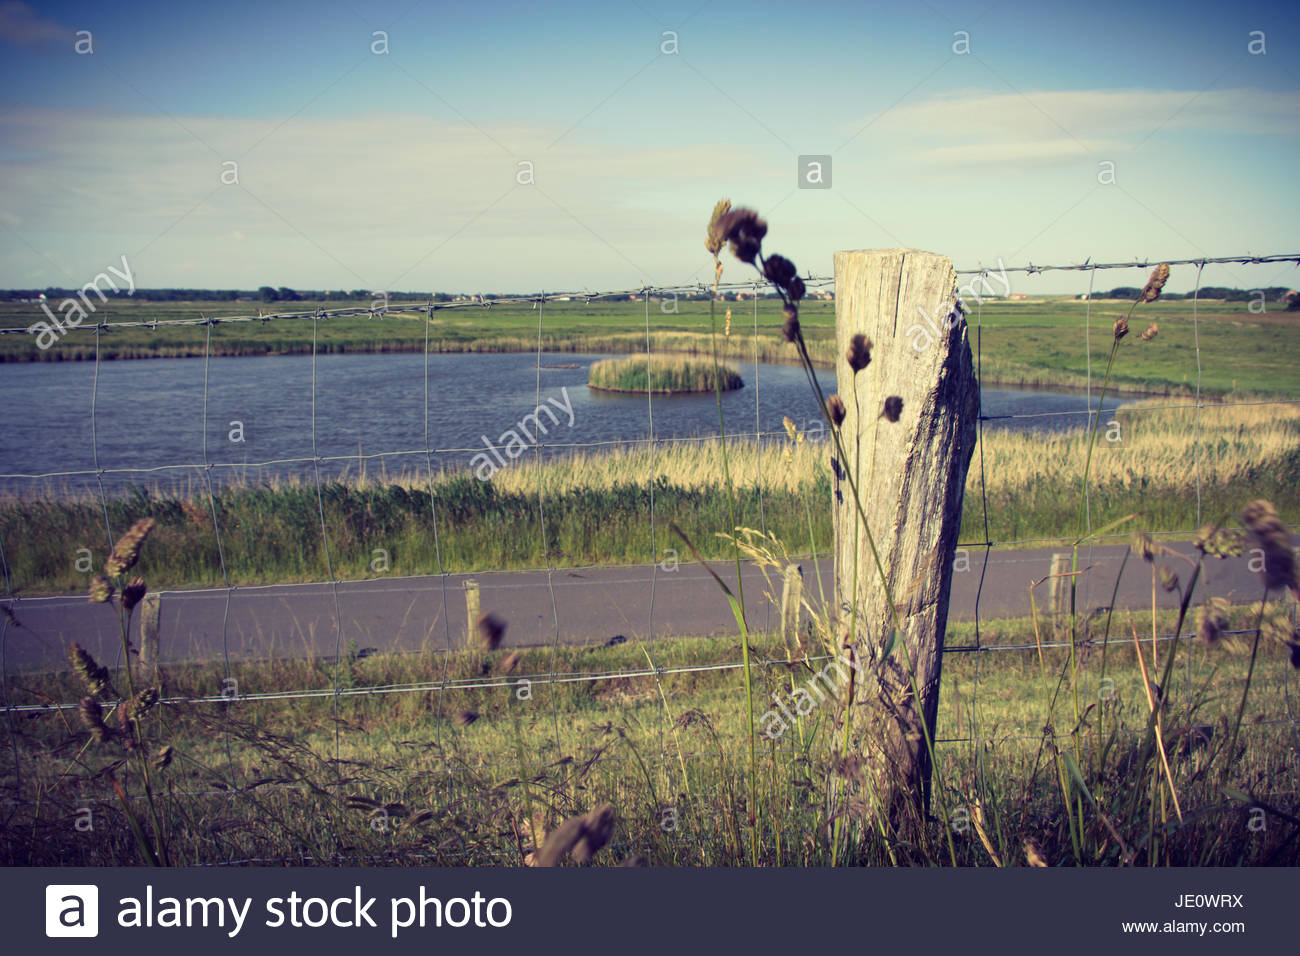 Marshland landscape Germany nature protected area nature reserve lake landscape summer scenery environmental protection - Stock Image